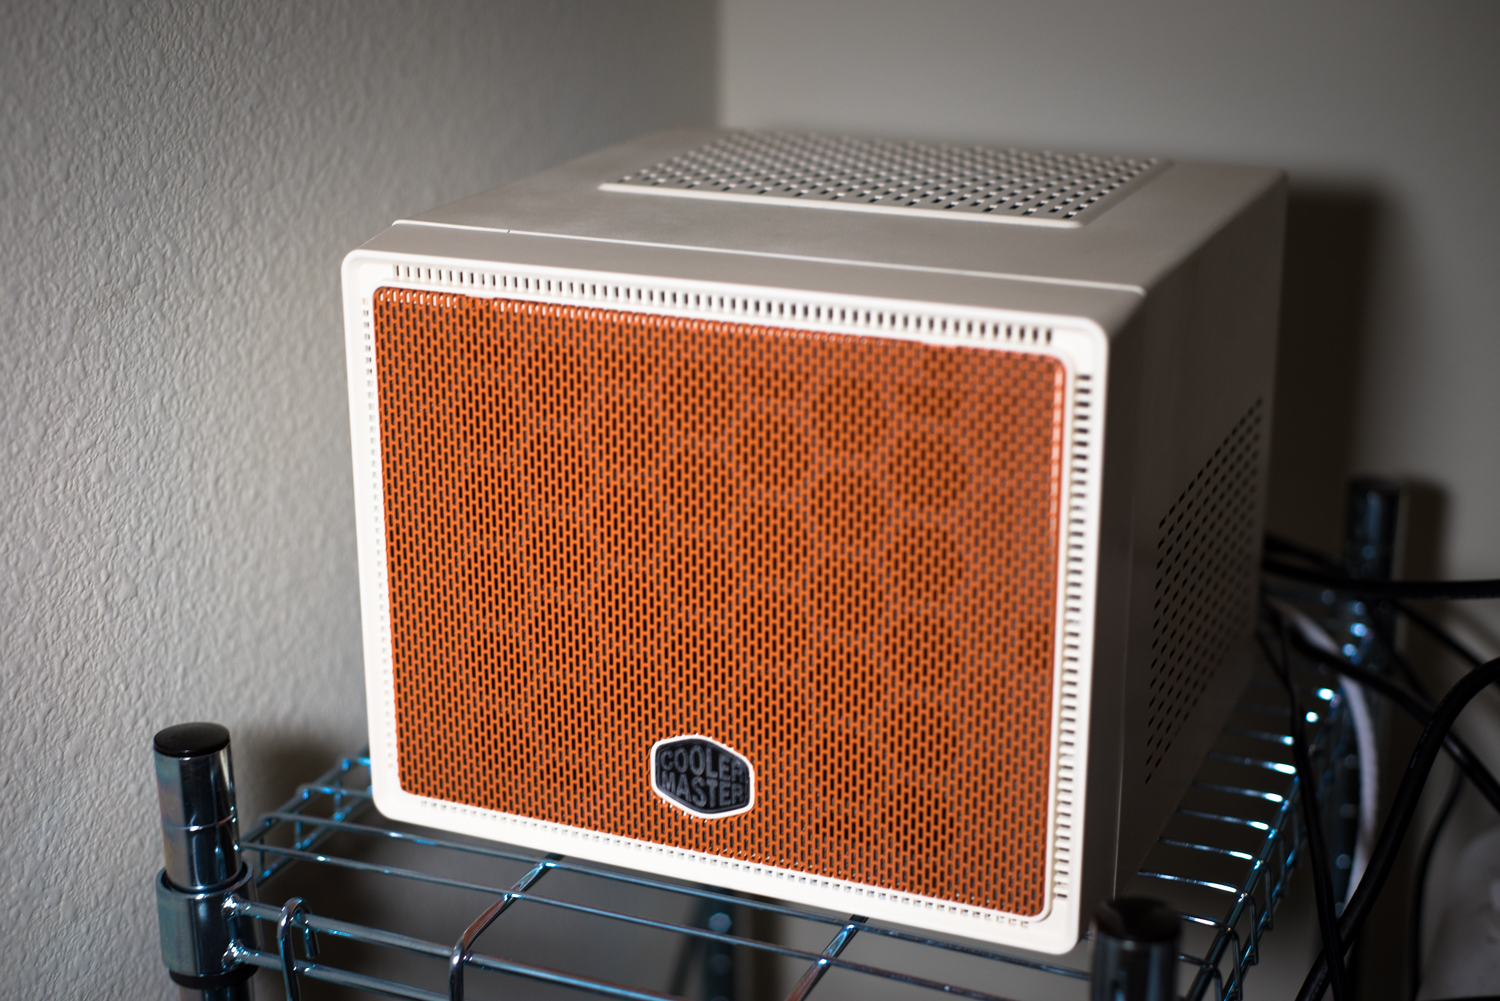 White and Orange Cooler Master Elite 110 Case Mod